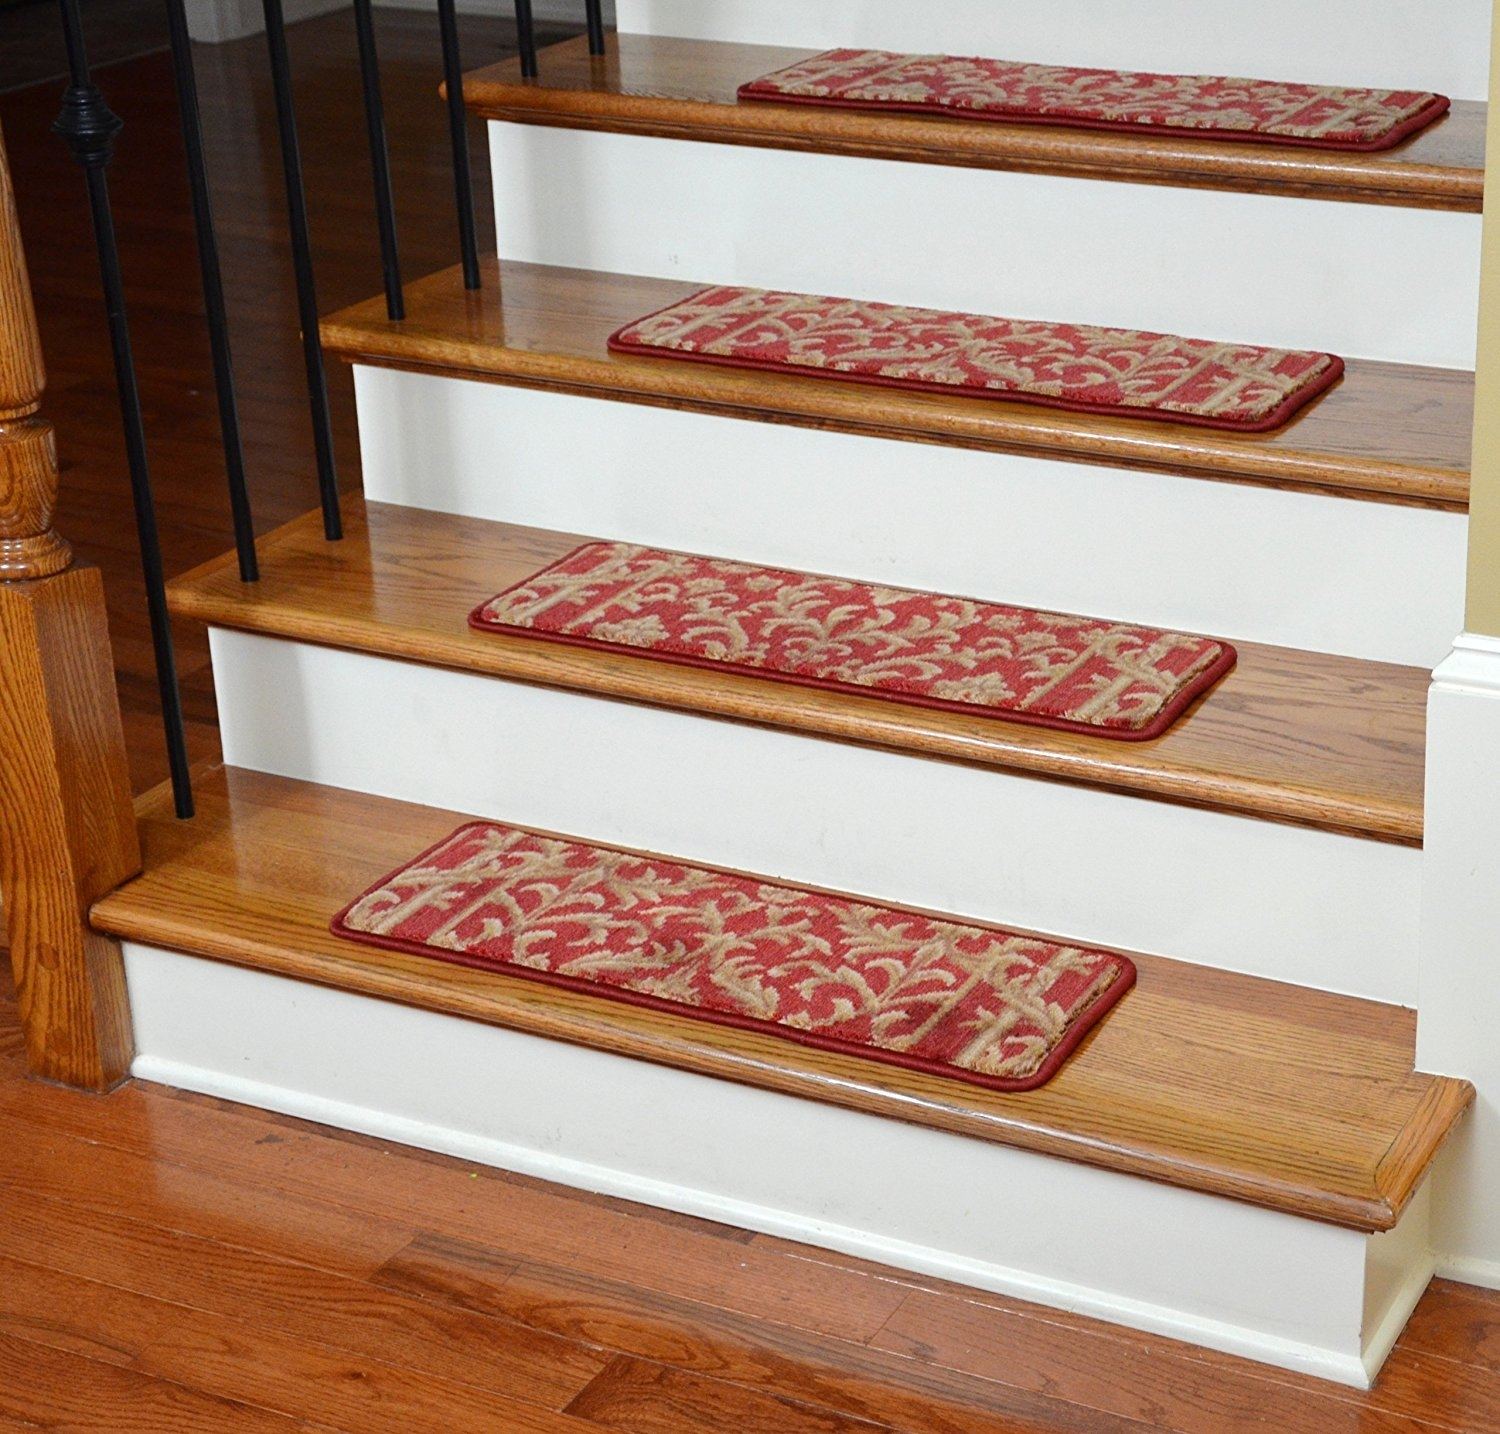 Amazon Premium Carpet Stair Treads Baroque Spice Within Premium Carpet Stair Treads (Image 2 of 15)